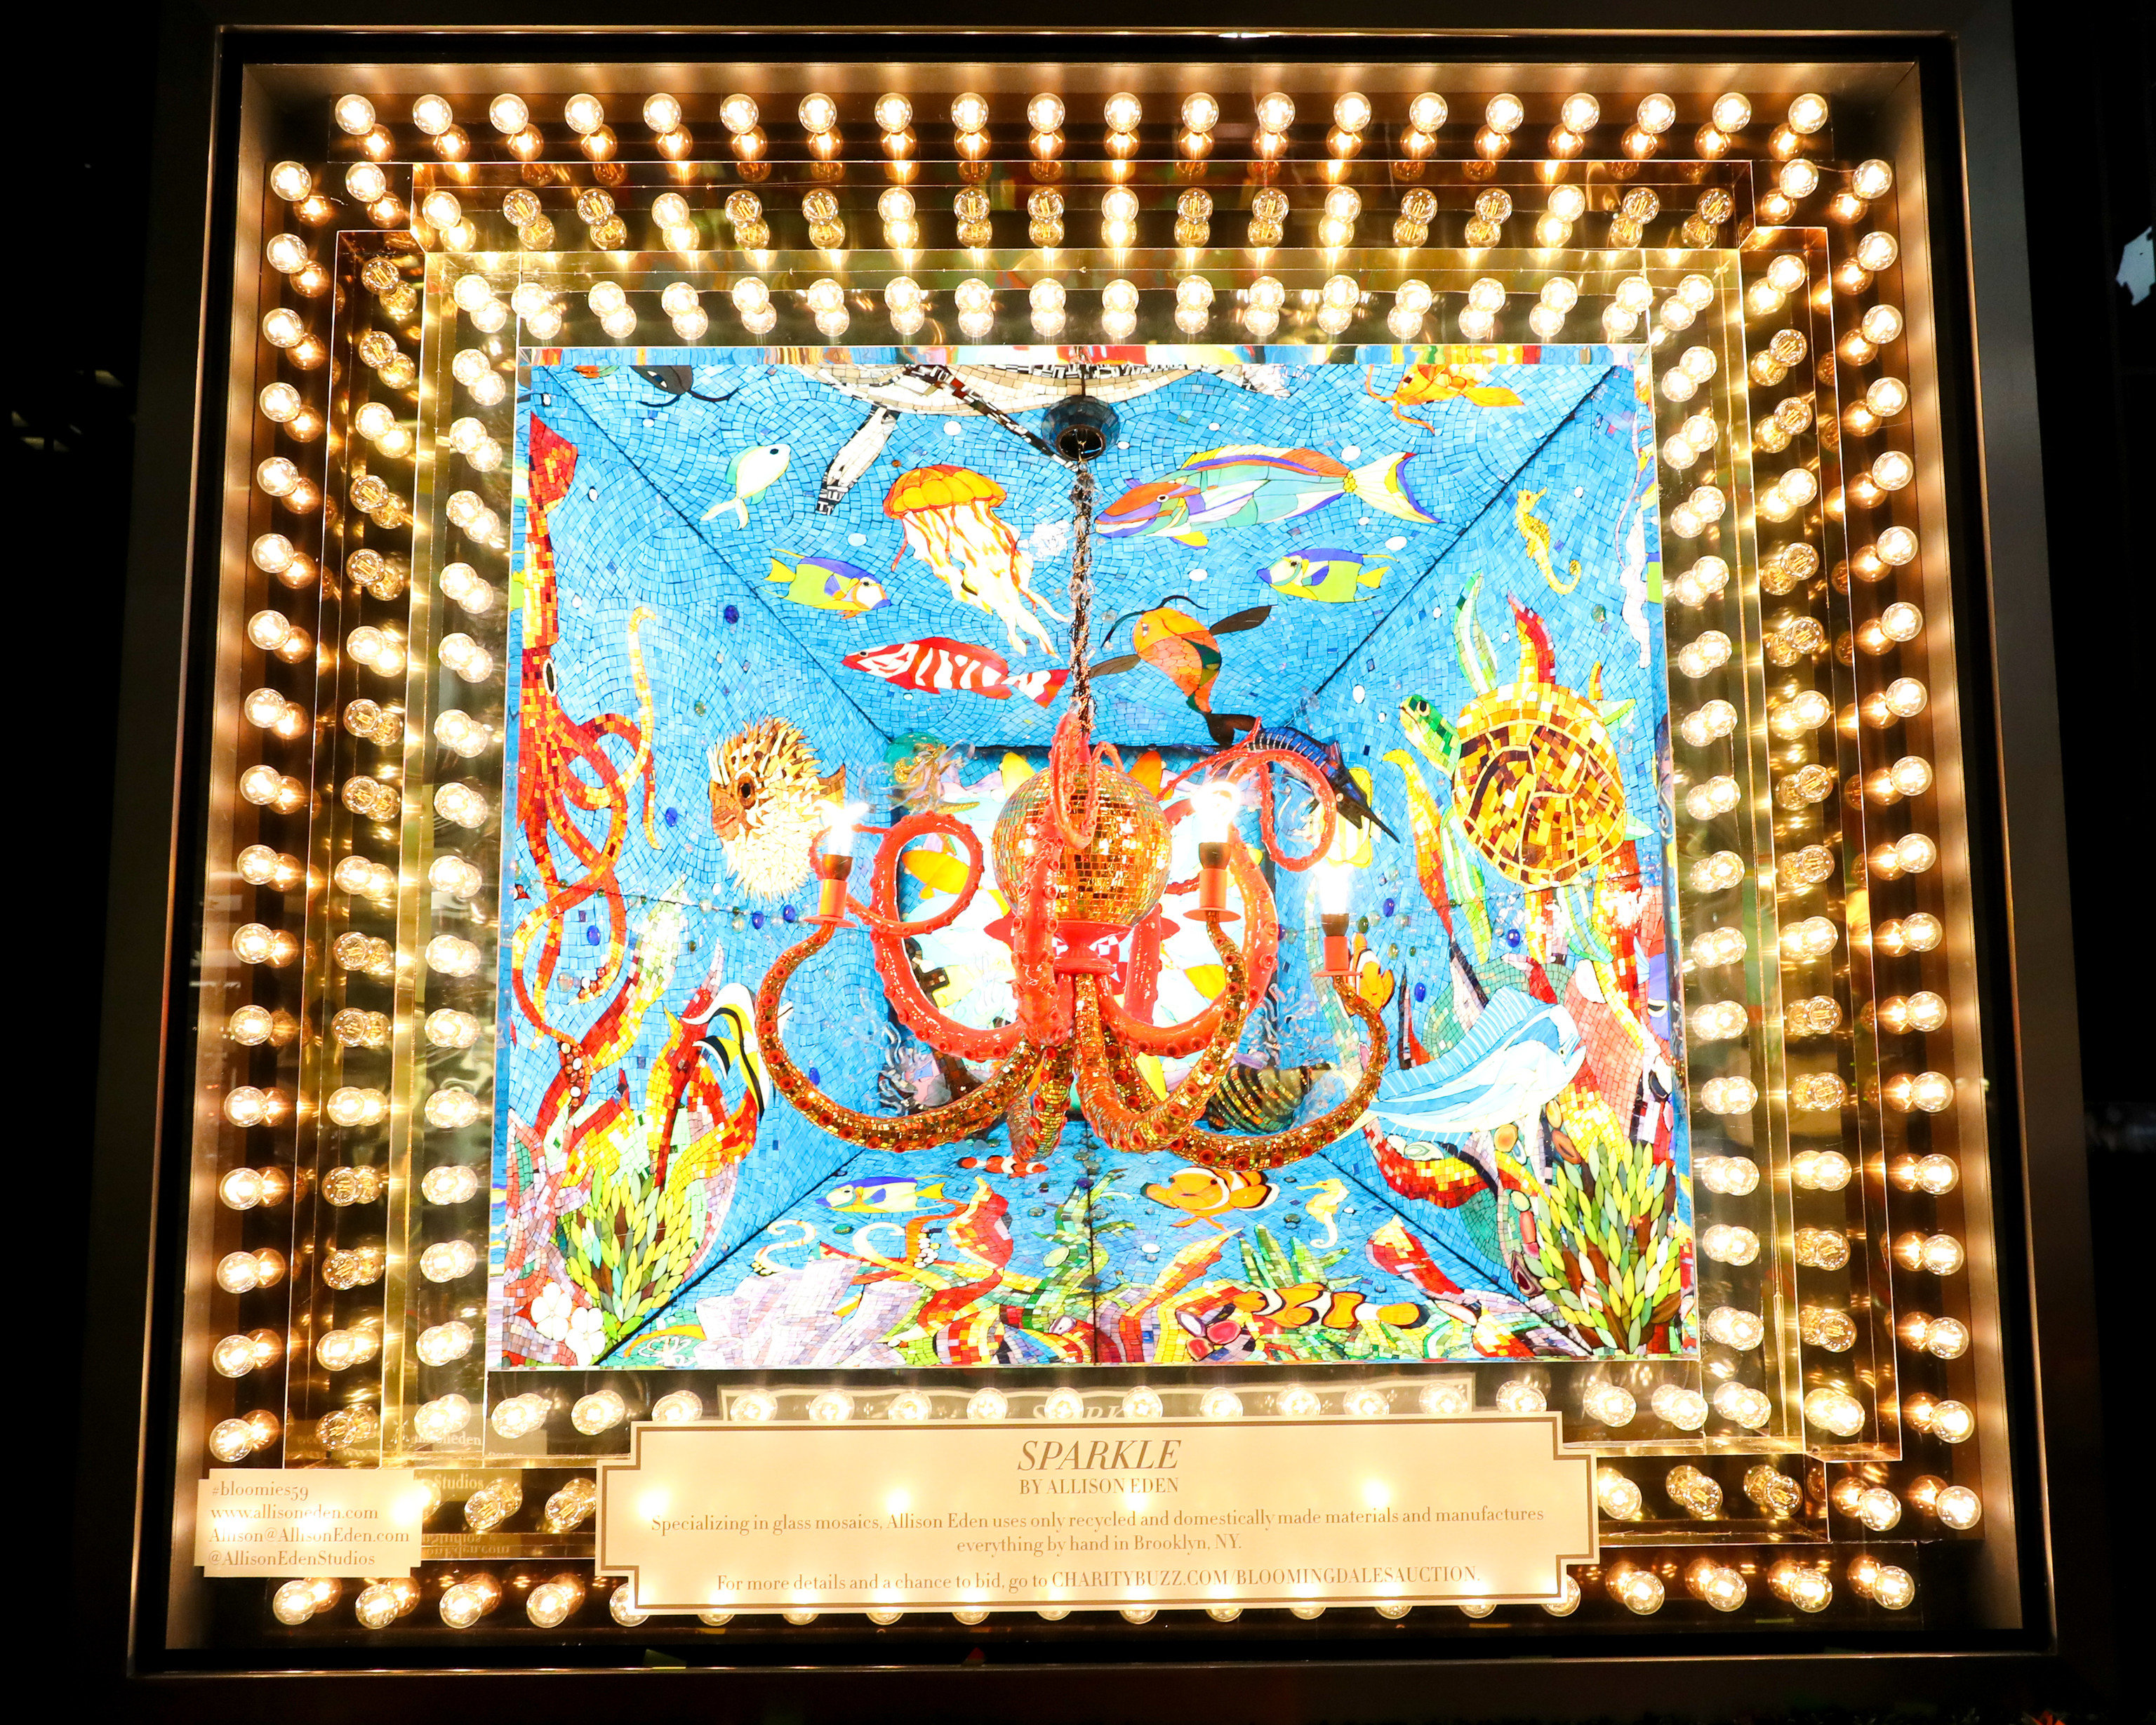 Trip Ideas stained glass glass window material symmetry picture frame